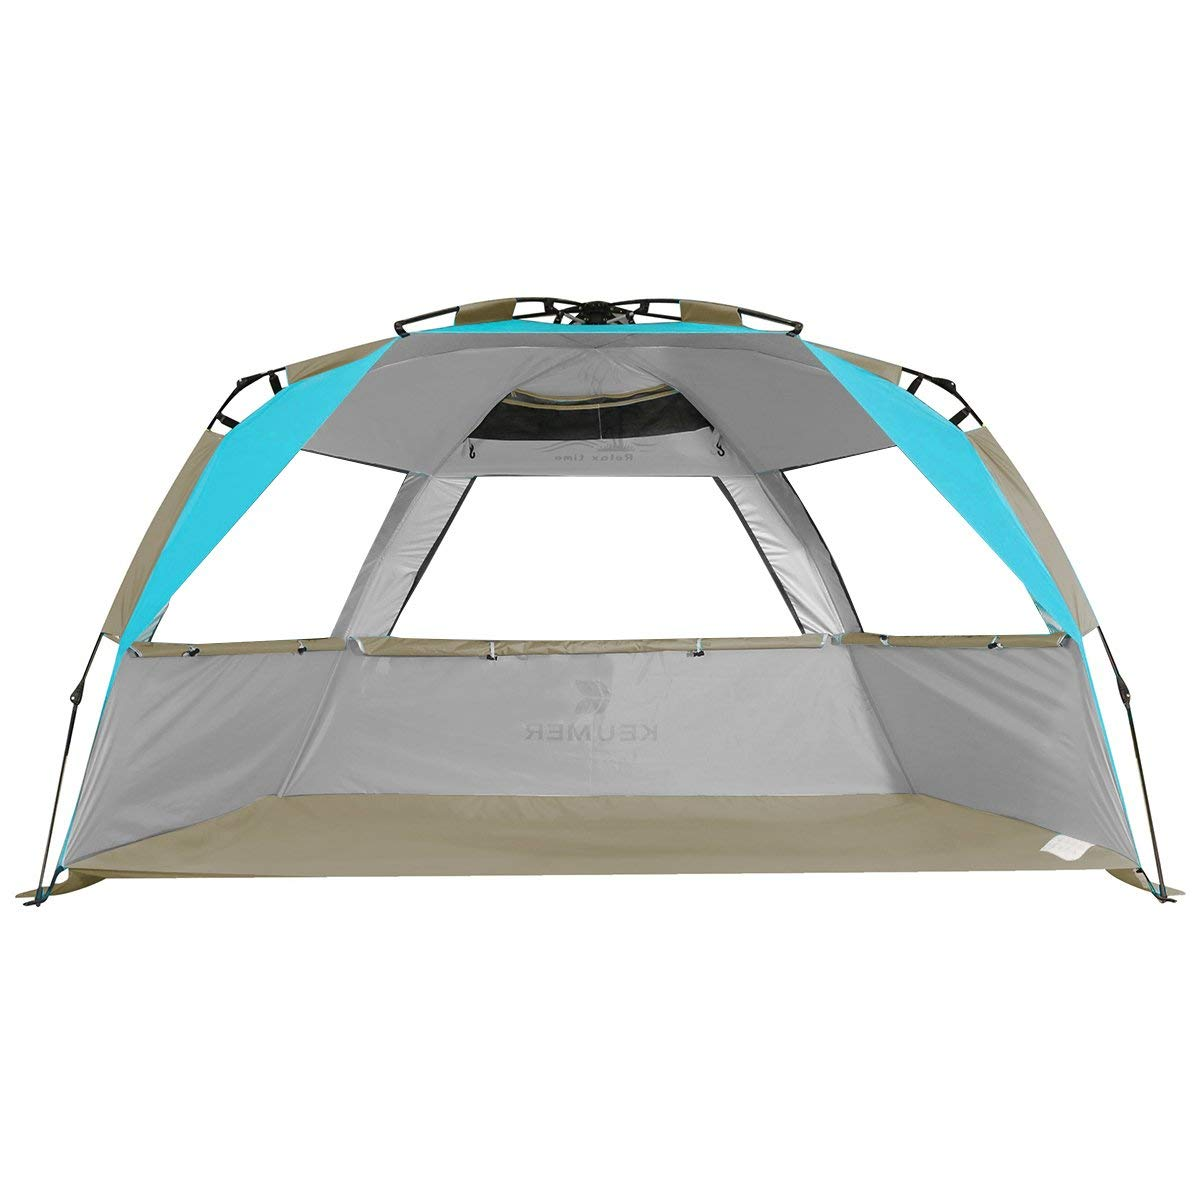 1f8e1eff981b Get Quotations · G4Free Easy Set up Beach Tent Pop up Sun Shelter Large  Family Beach Shade UV Protection